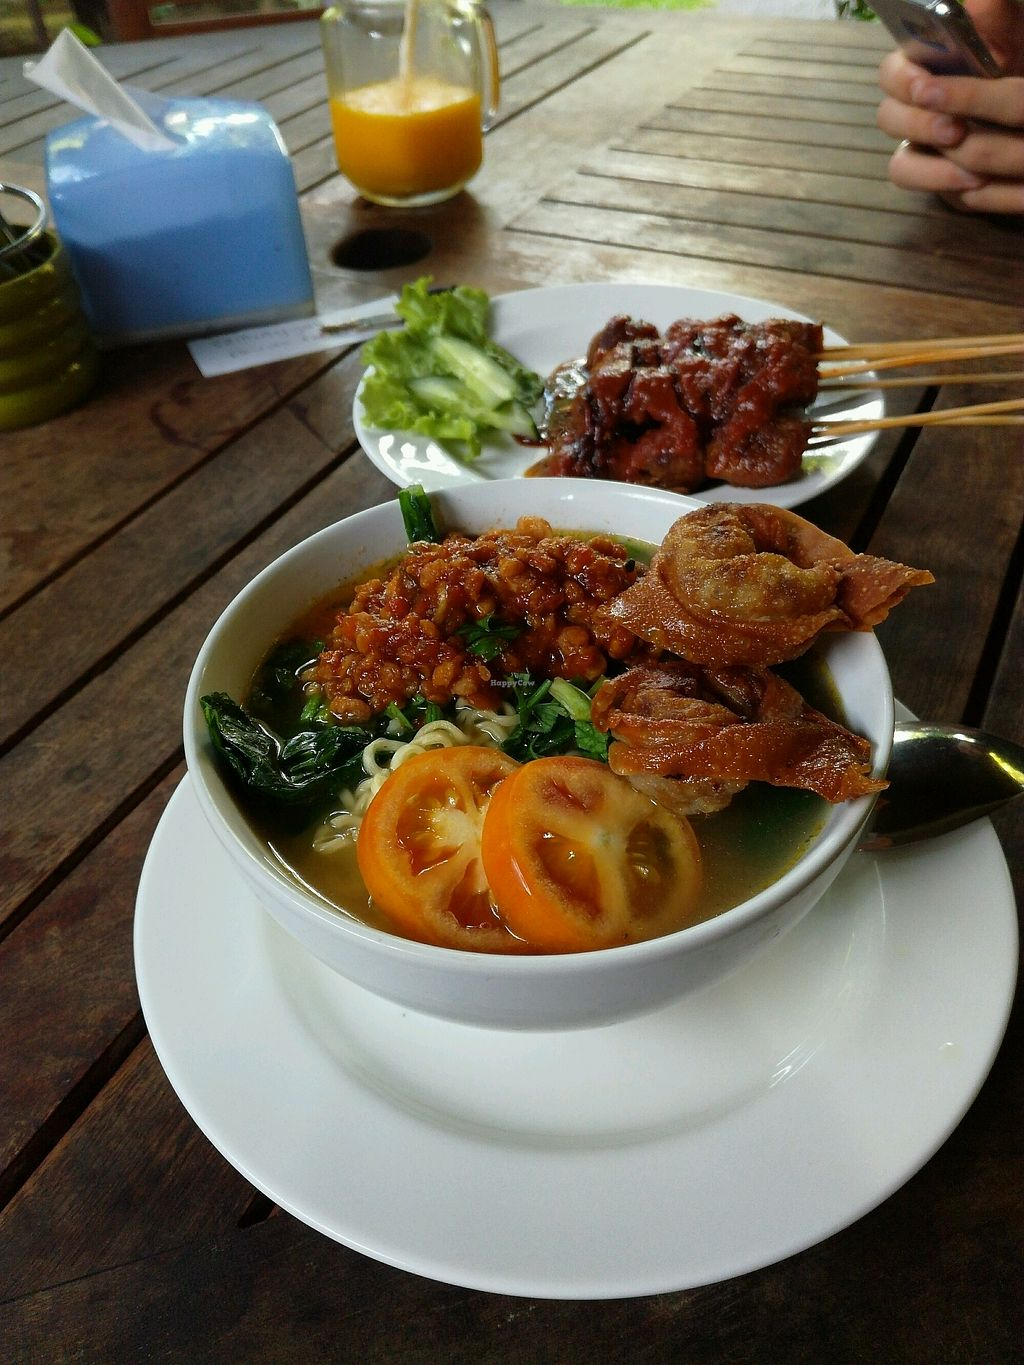 "Photo of Tasty Vegan - Seminyak  by <a href=""/members/profile/ViktorijaGor"">ViktorijaGor</a> <br/>Mie Kuah and Sate sticks  <br/> October 23, 2017  - <a href='/contact/abuse/image/29016/317932'>Report</a>"